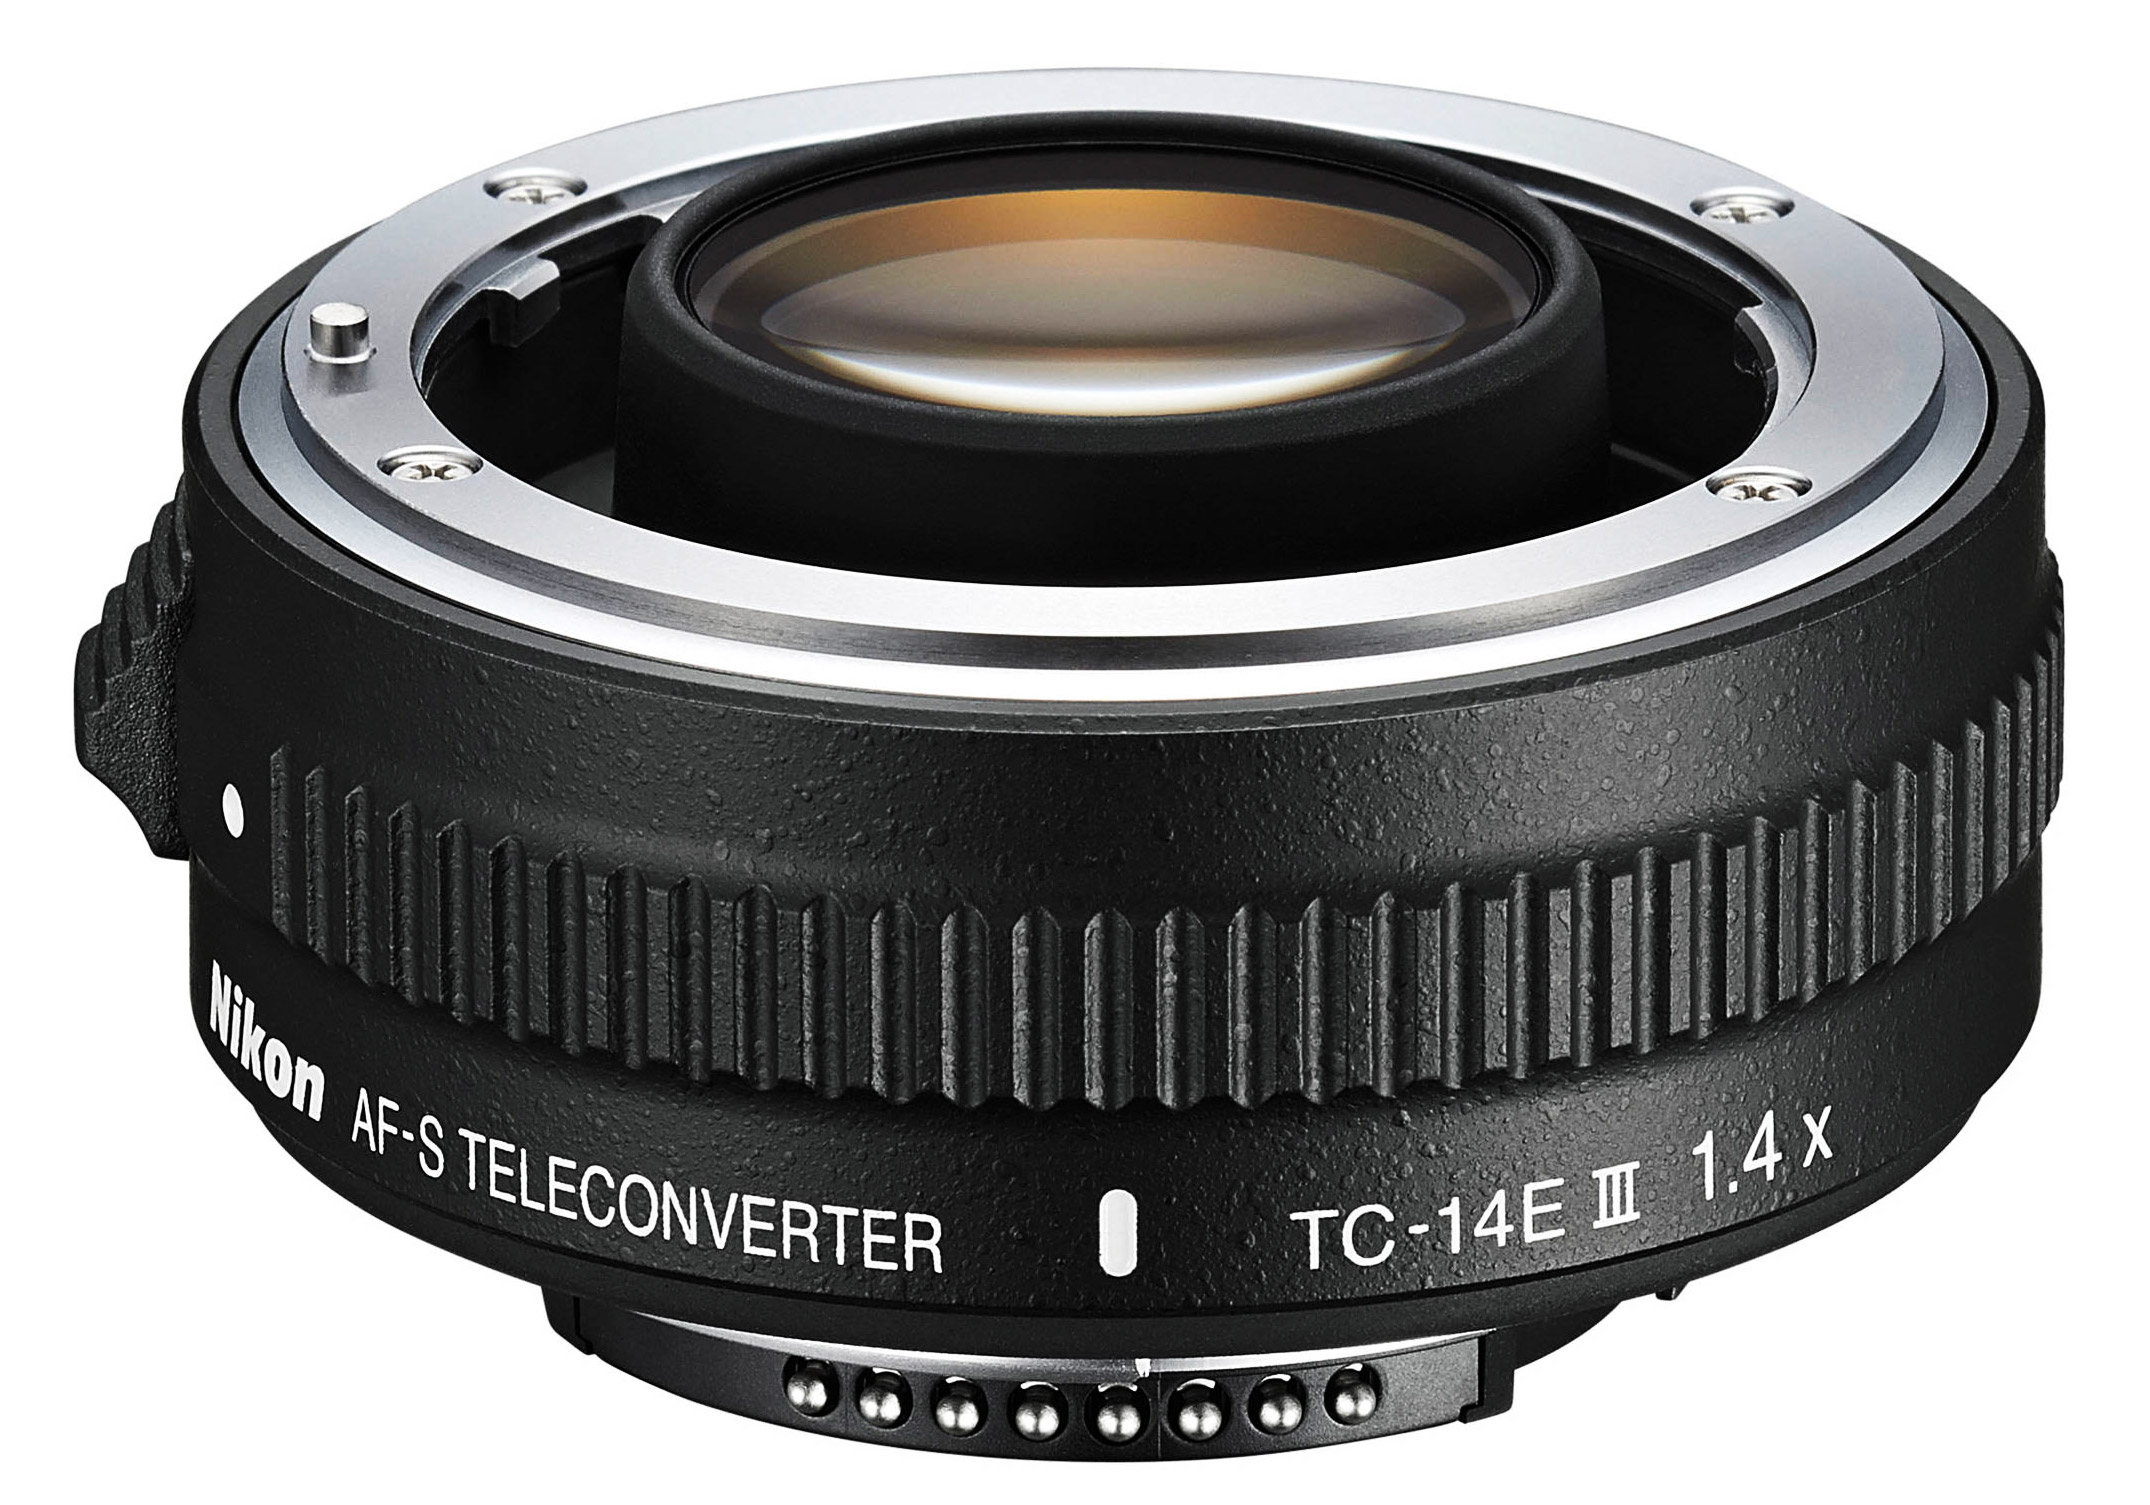 Lenses Nikon Specifications And Opinions Juzaphoto Af 105mm F 28g If Ed Dx Fisheye Tc 14e Iii